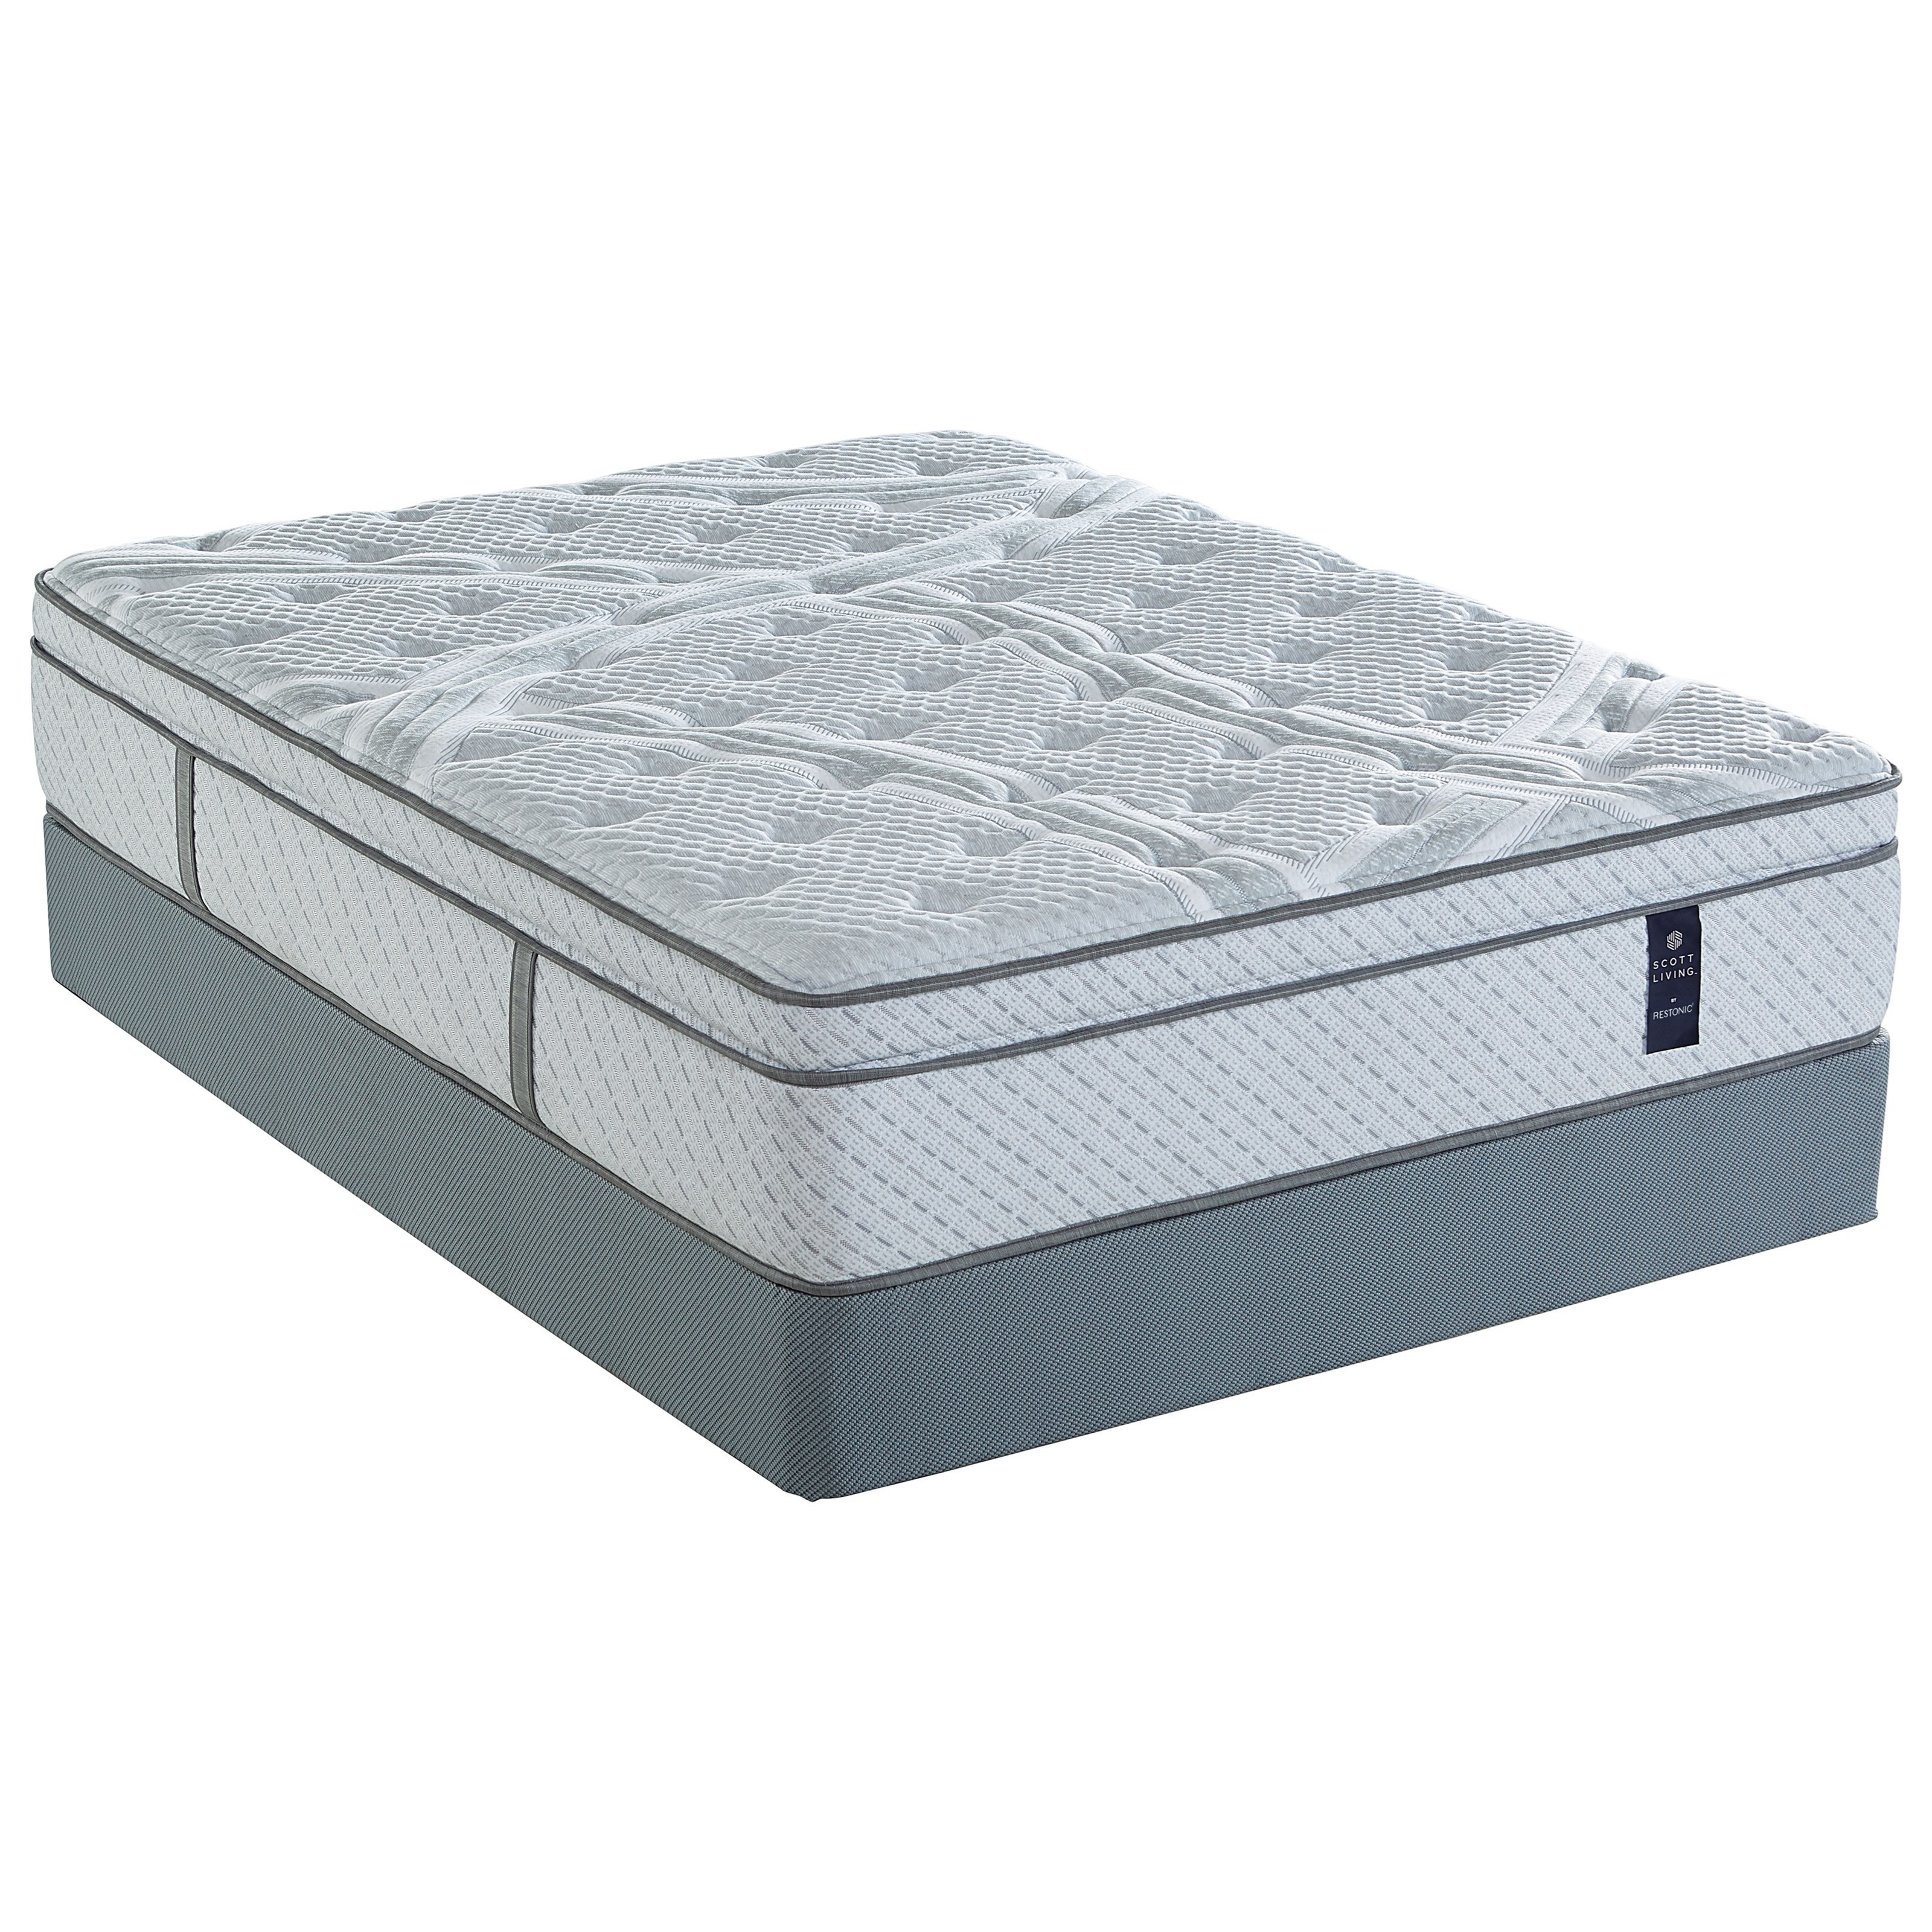 Primrose Euro Top Twin Pocketed Coil Mattress Set by Restonic at Furniture Fair - North Carolina